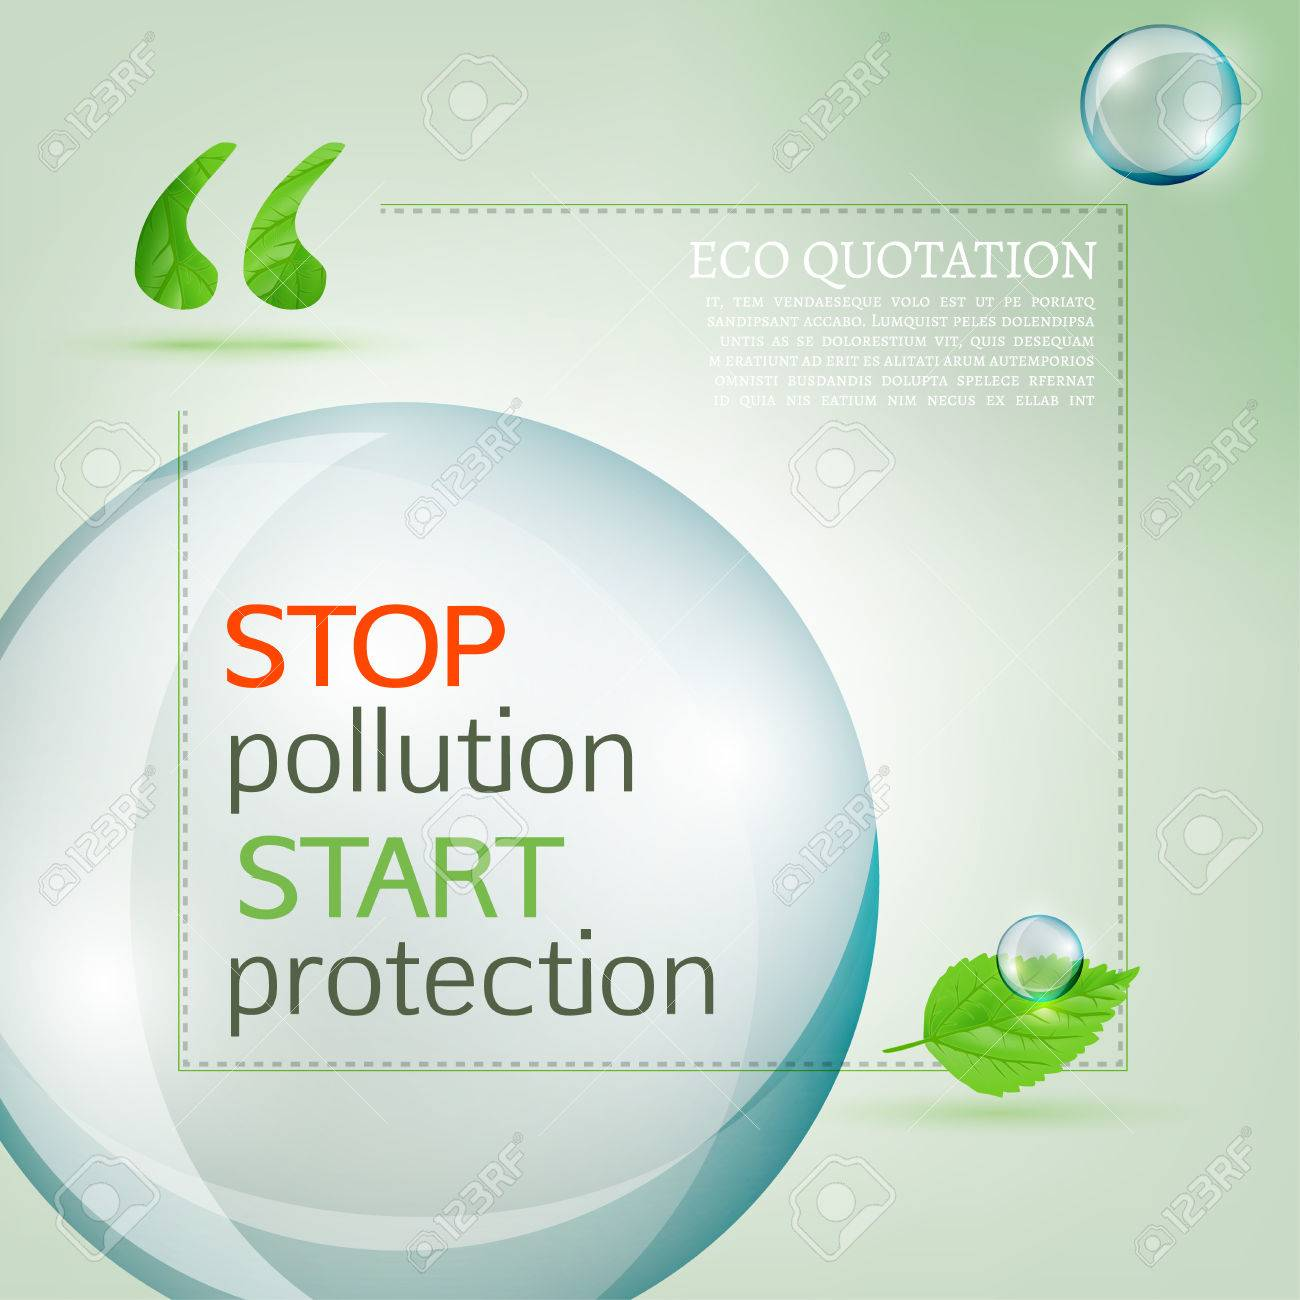 Pollution Quotes Vector Illustration Of Beautiful Abstract Bio Background With